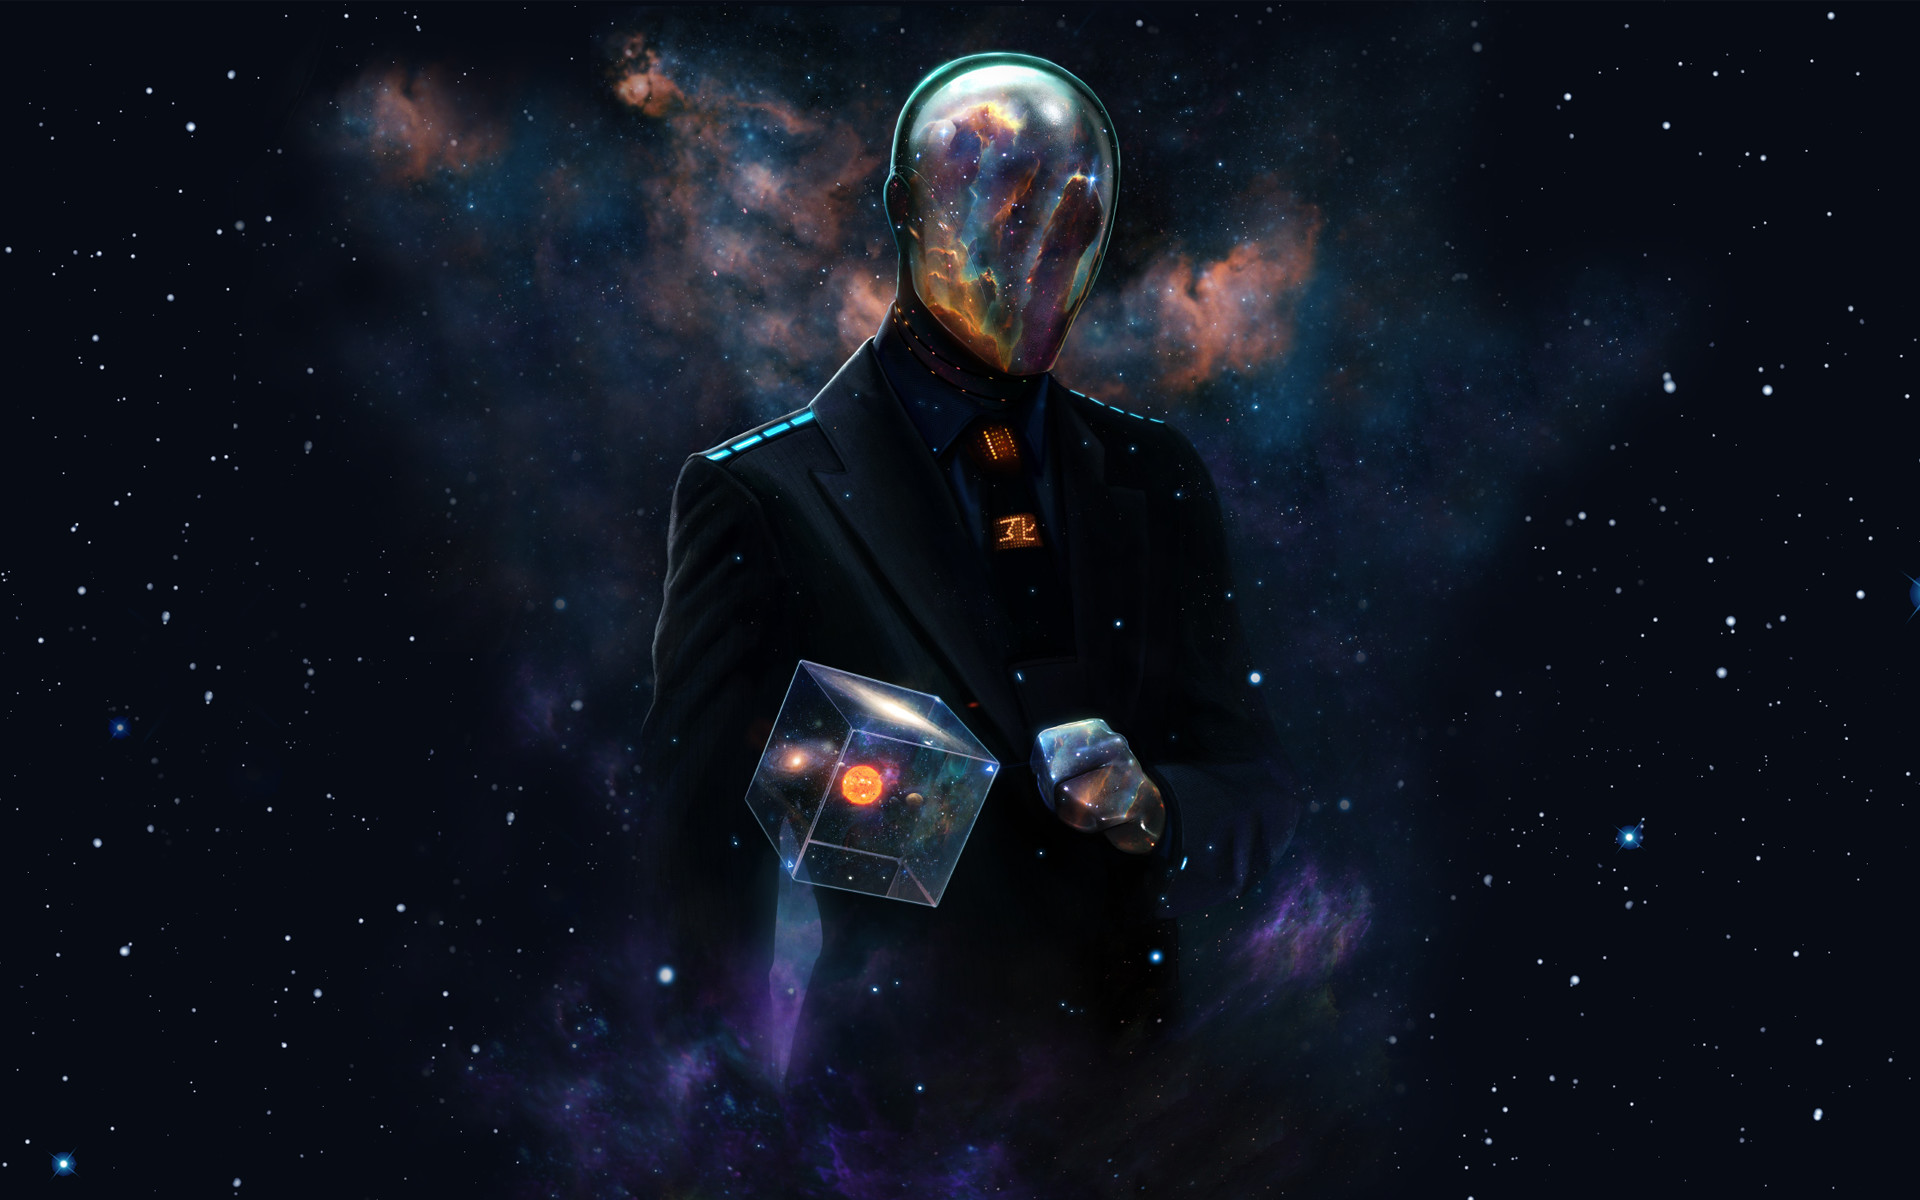 Outer Space Futuristic Galaxies Suit Spaceman Artwork Alien Wallpaper At 3d  Wallpapers